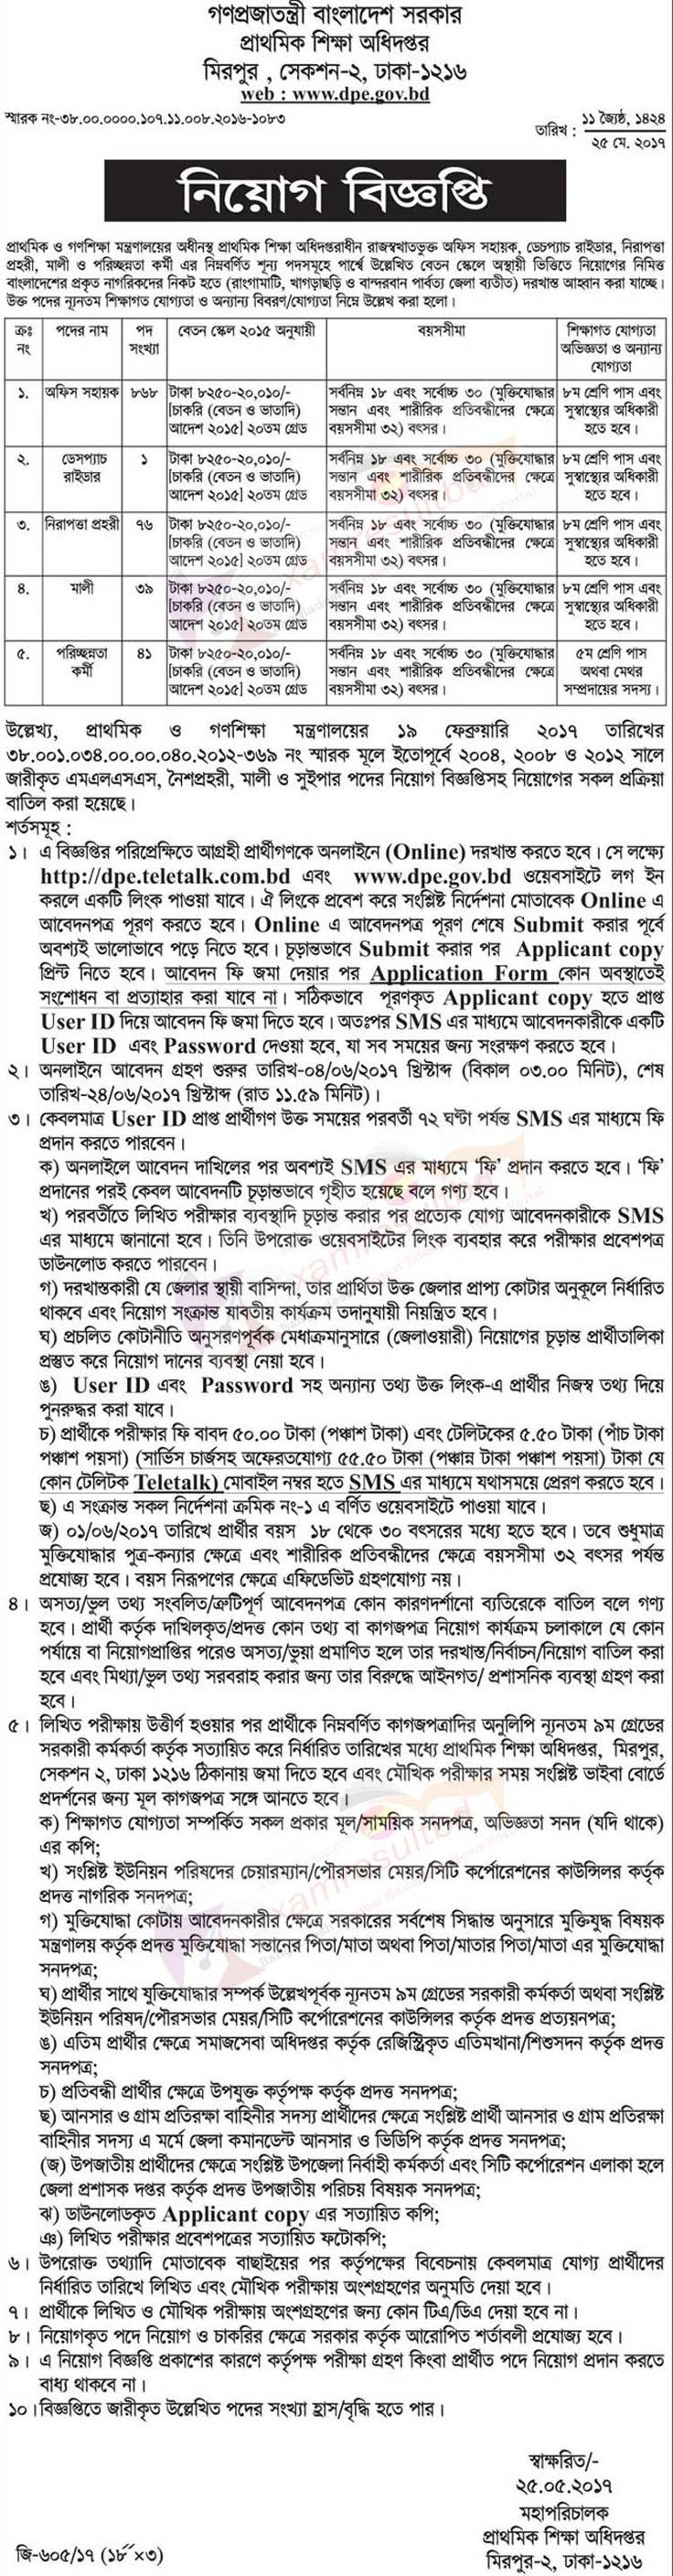 Directorate of Primary Education Job Circular 2017 Publish at www dpe gov bd. You Will Find All Information about DPE Job Circular 2017 at here